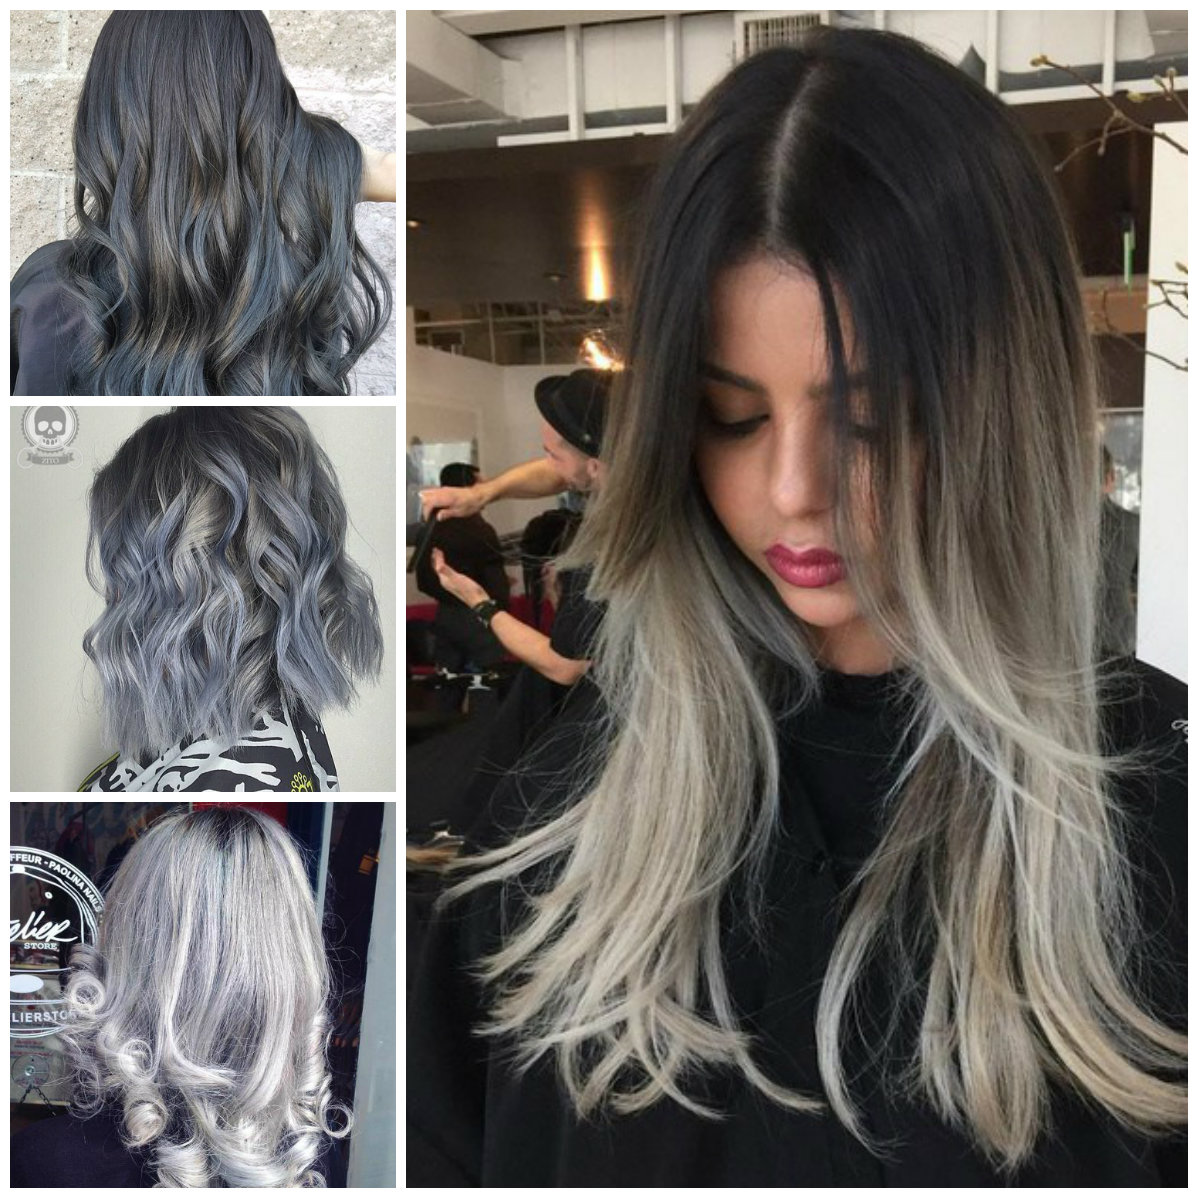 Incredible Shades Of Grey Hair Trend For 2017 2021 Haircuts Hairstyles And Hair Colors